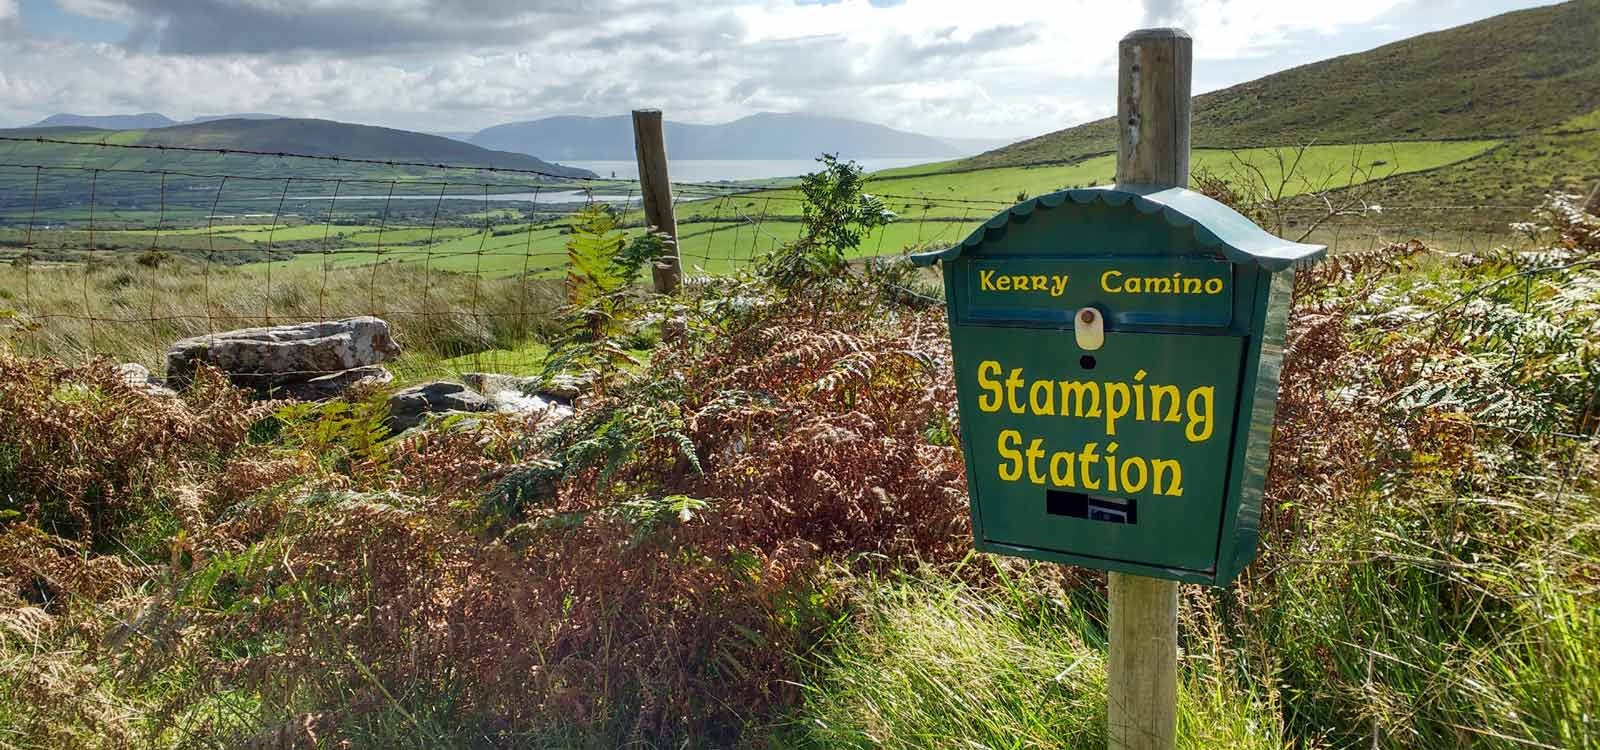 Kerry Camino stamping station